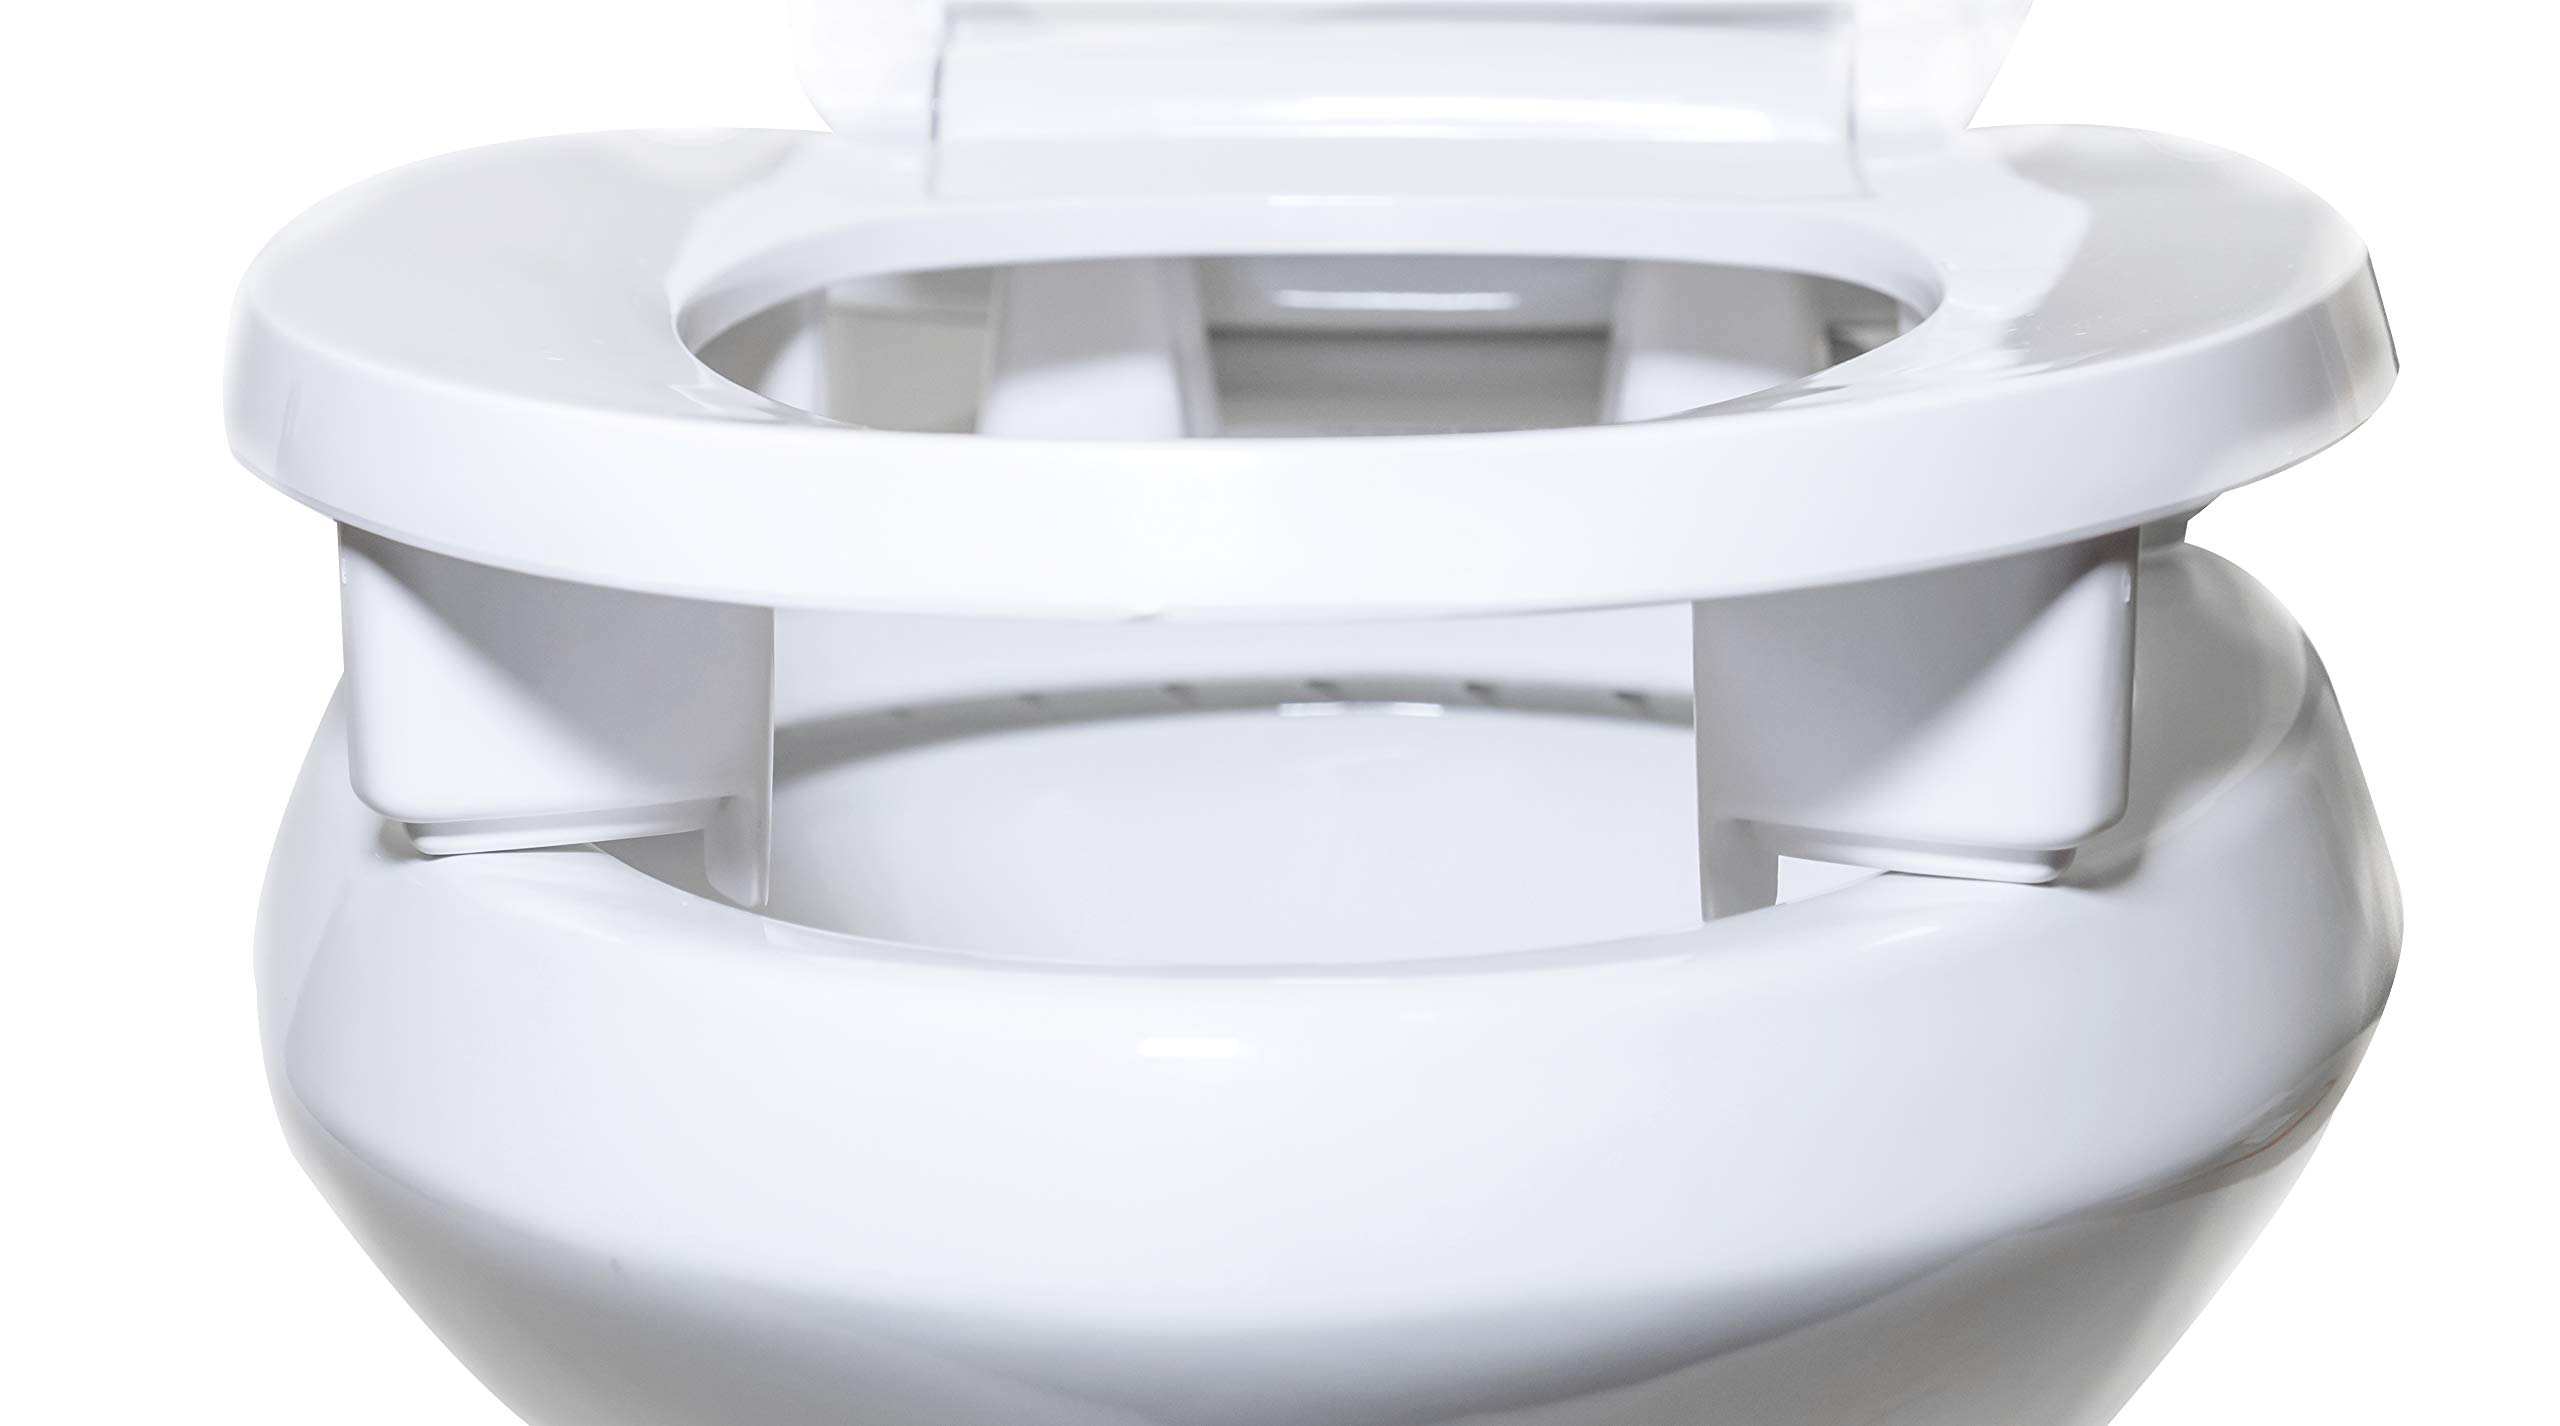 Centoco 3L800STS-001 Elongated 3'' Lift, Raised Plastic Toilet Seat, Closed Front with Cover, ADA Compliant Handicap Medical Assistance Seat, White by Centoco (Image #4)